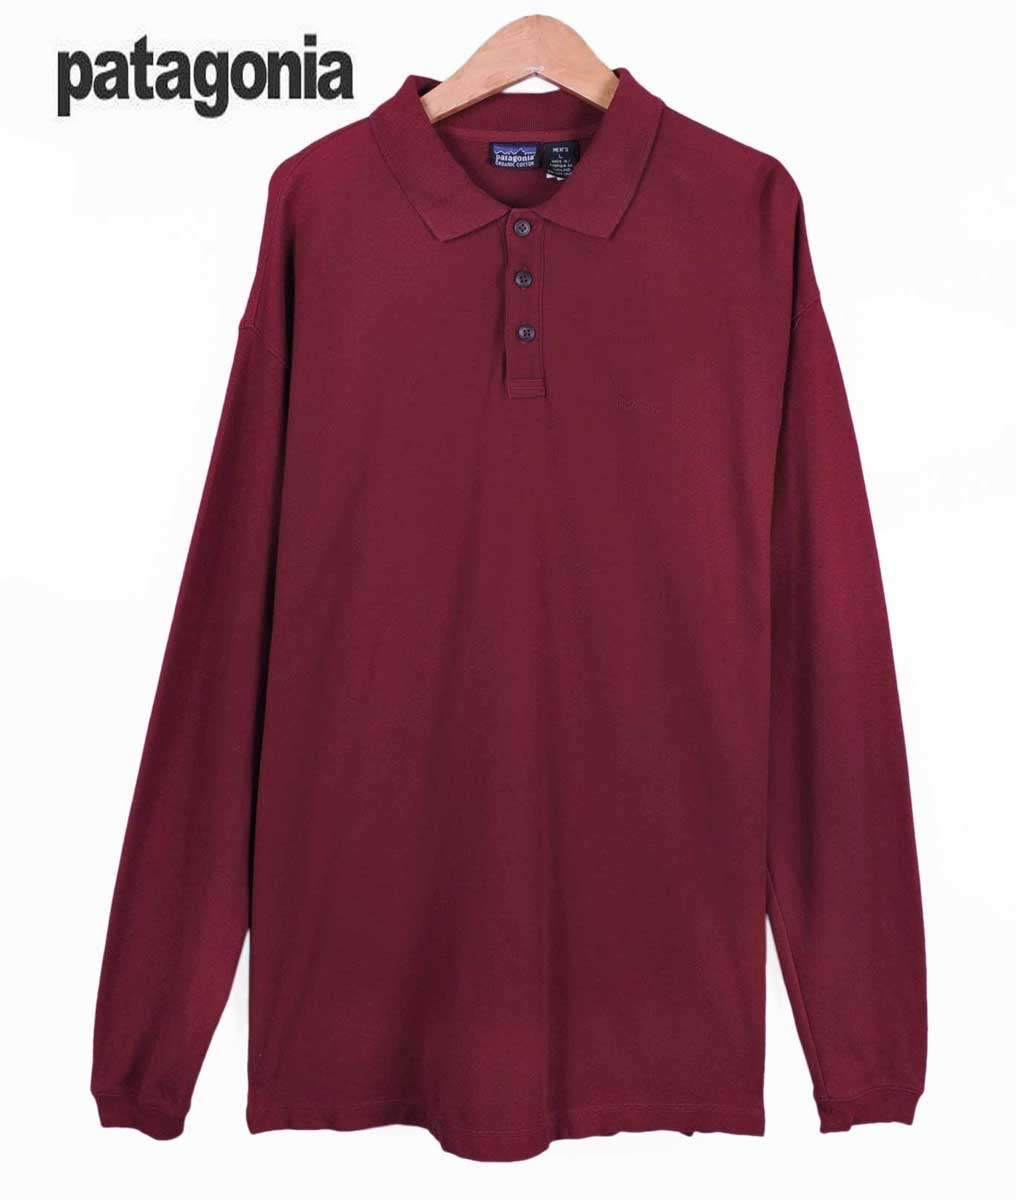 f7573a58 Patagonia Patagonia / organic cotton long-sleeved Polo Shirt / red wine /  men's XL ...